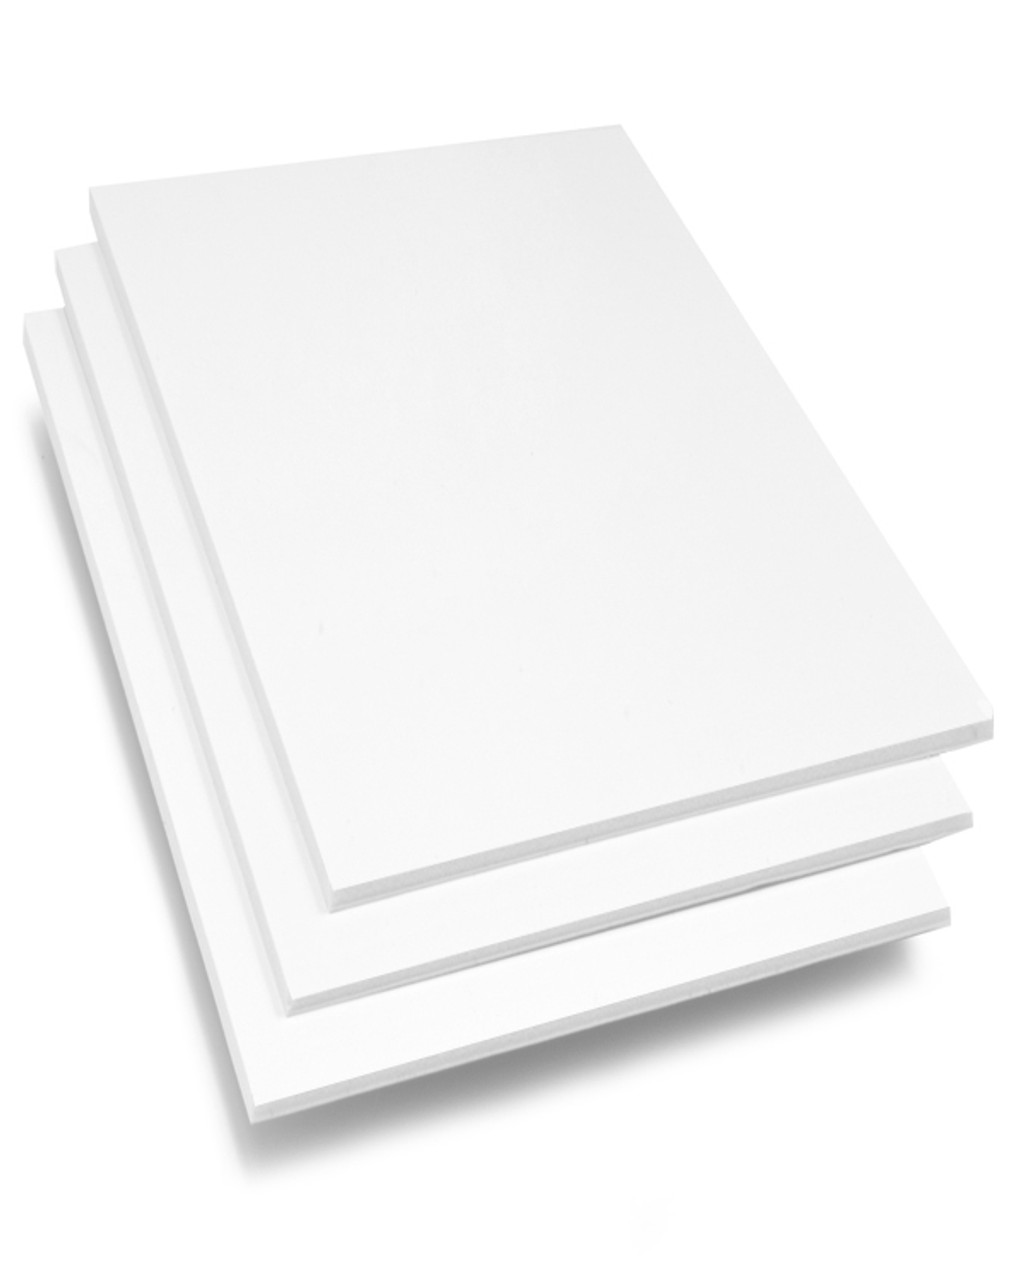 6x8 Foam Mat Board 1 8 Thick Foam Core Board Matboard Plus